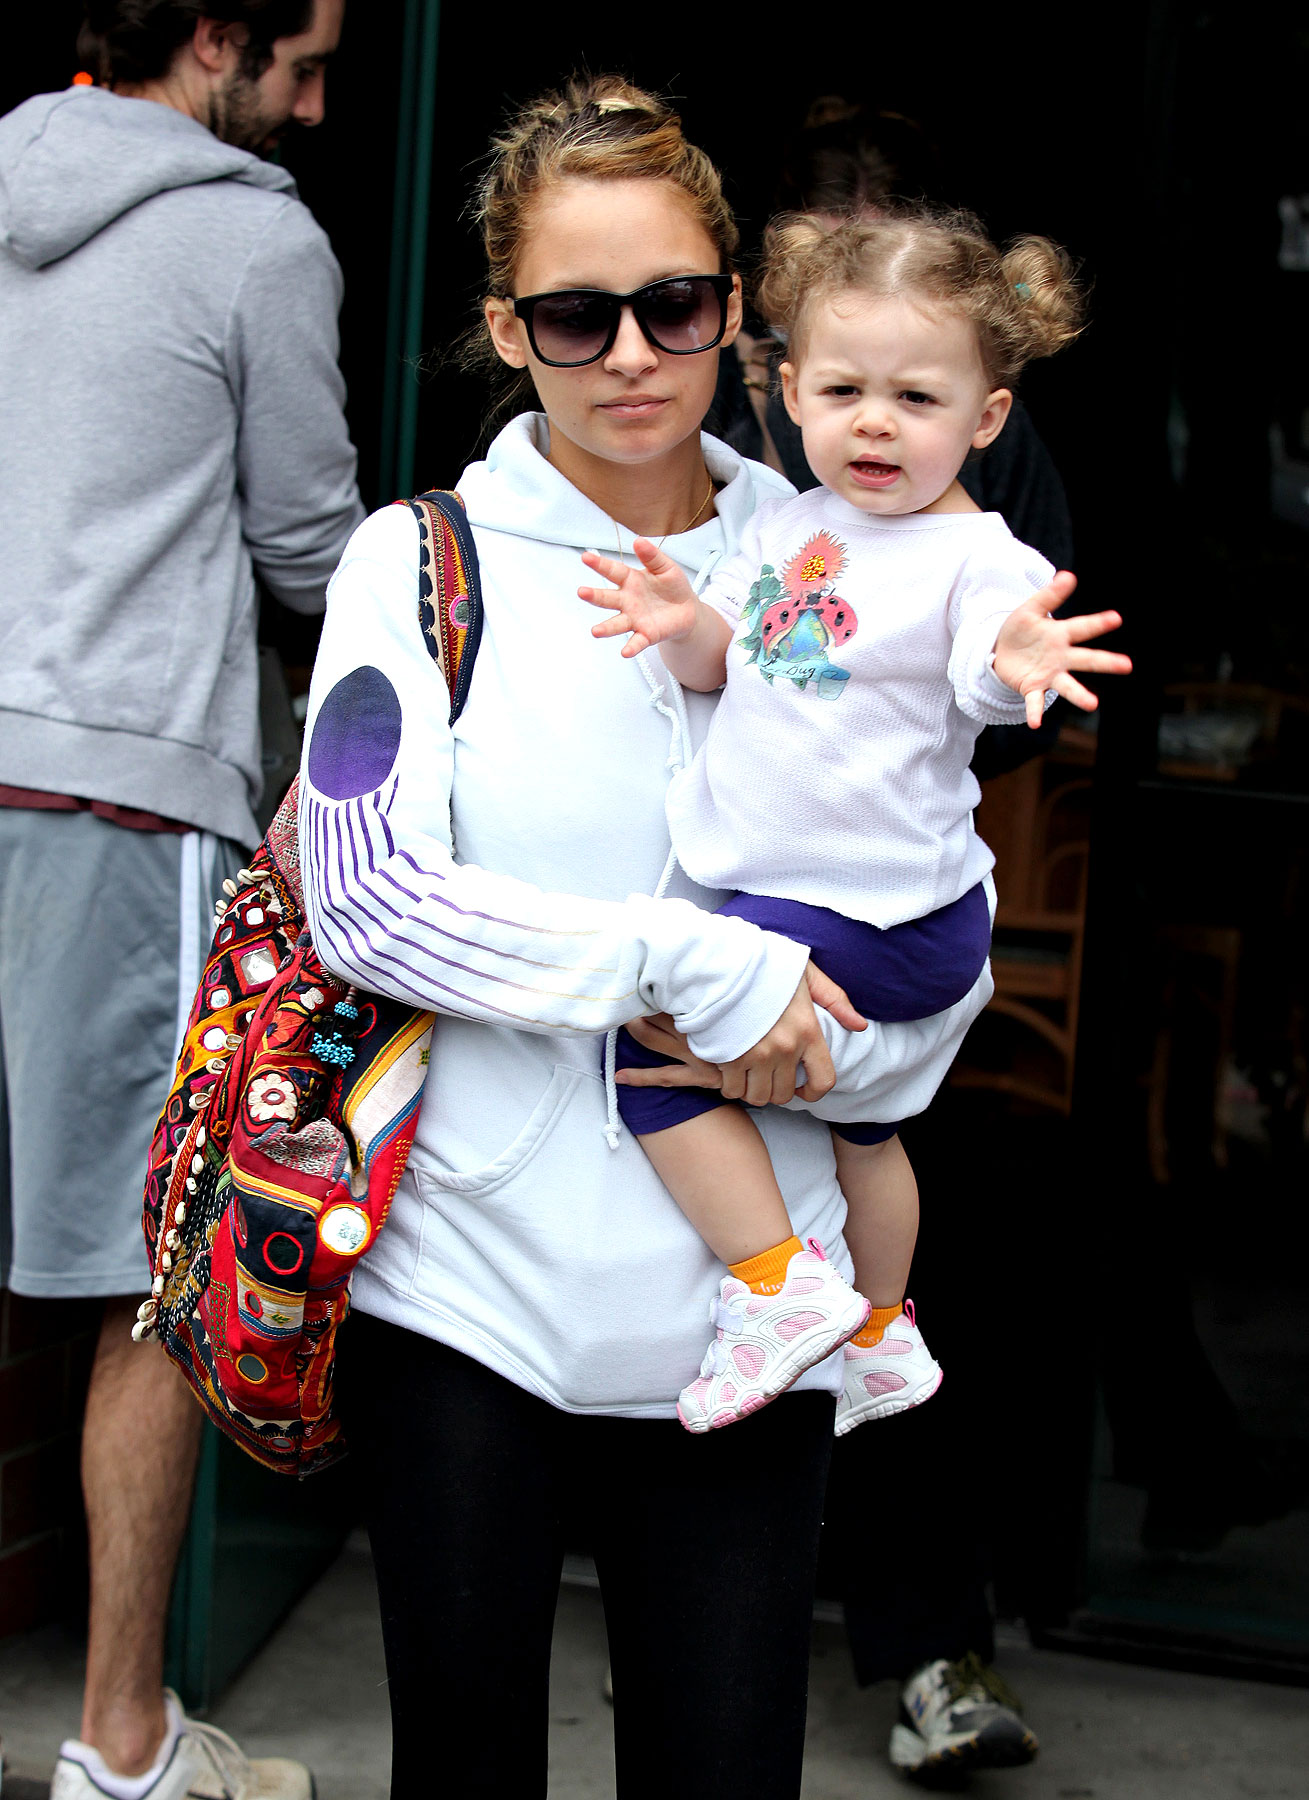 PHOTO GALLERY: Nicole Richie's Pigtailed Princess